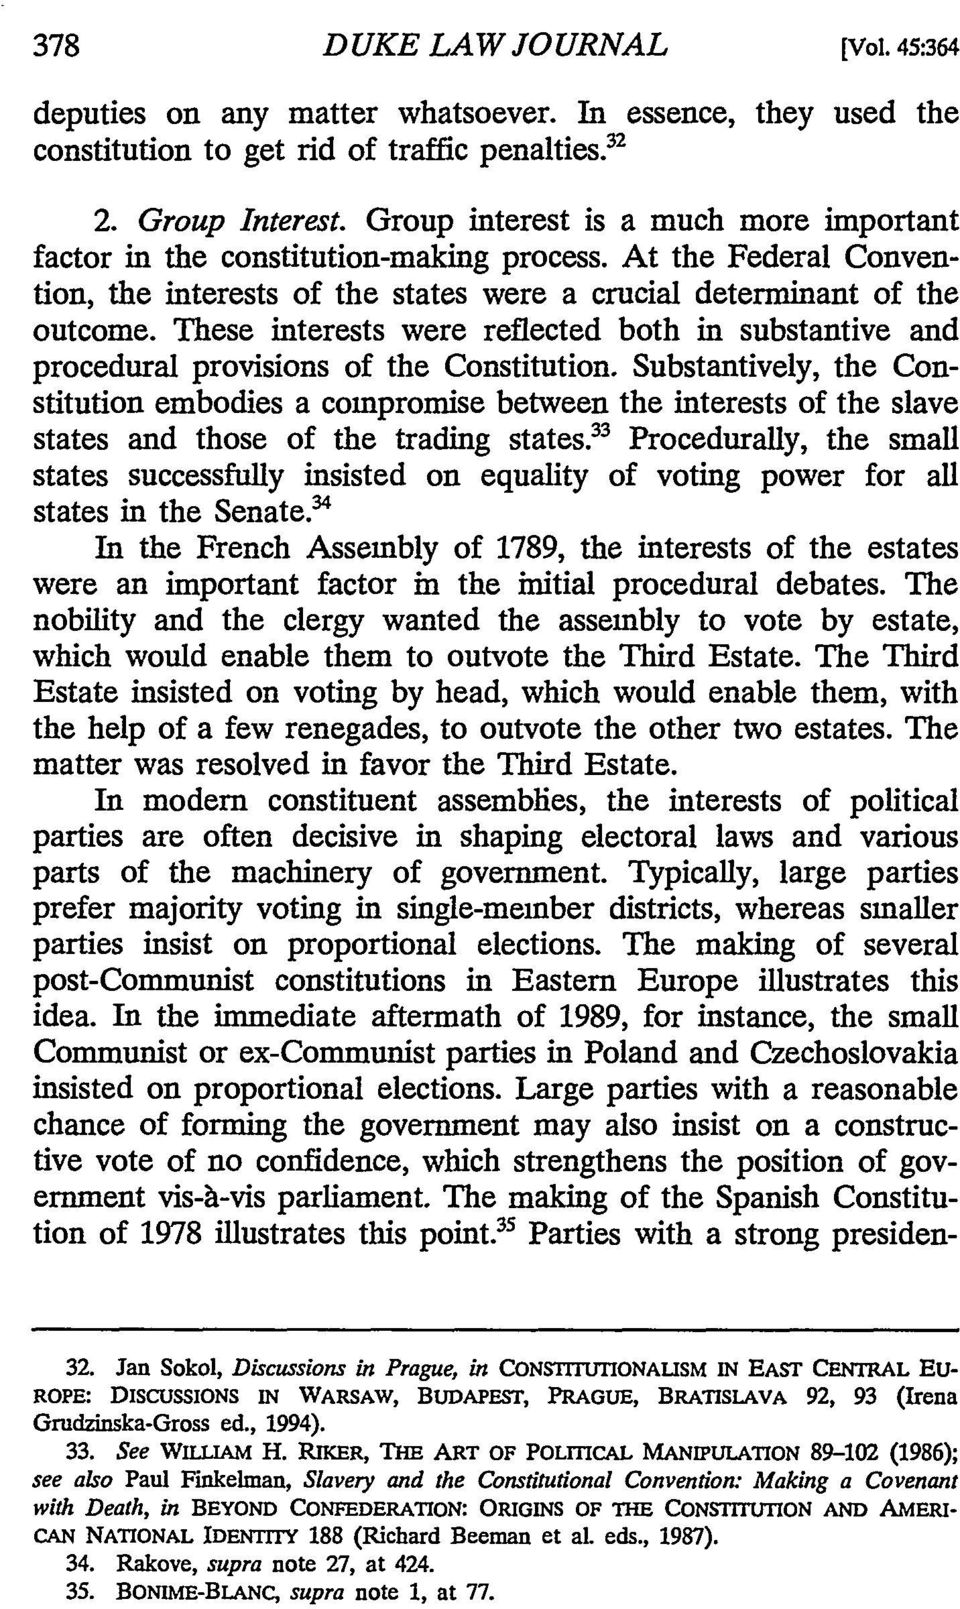 These interests were reflected both in substantive and procedural provisions of the Constitution.